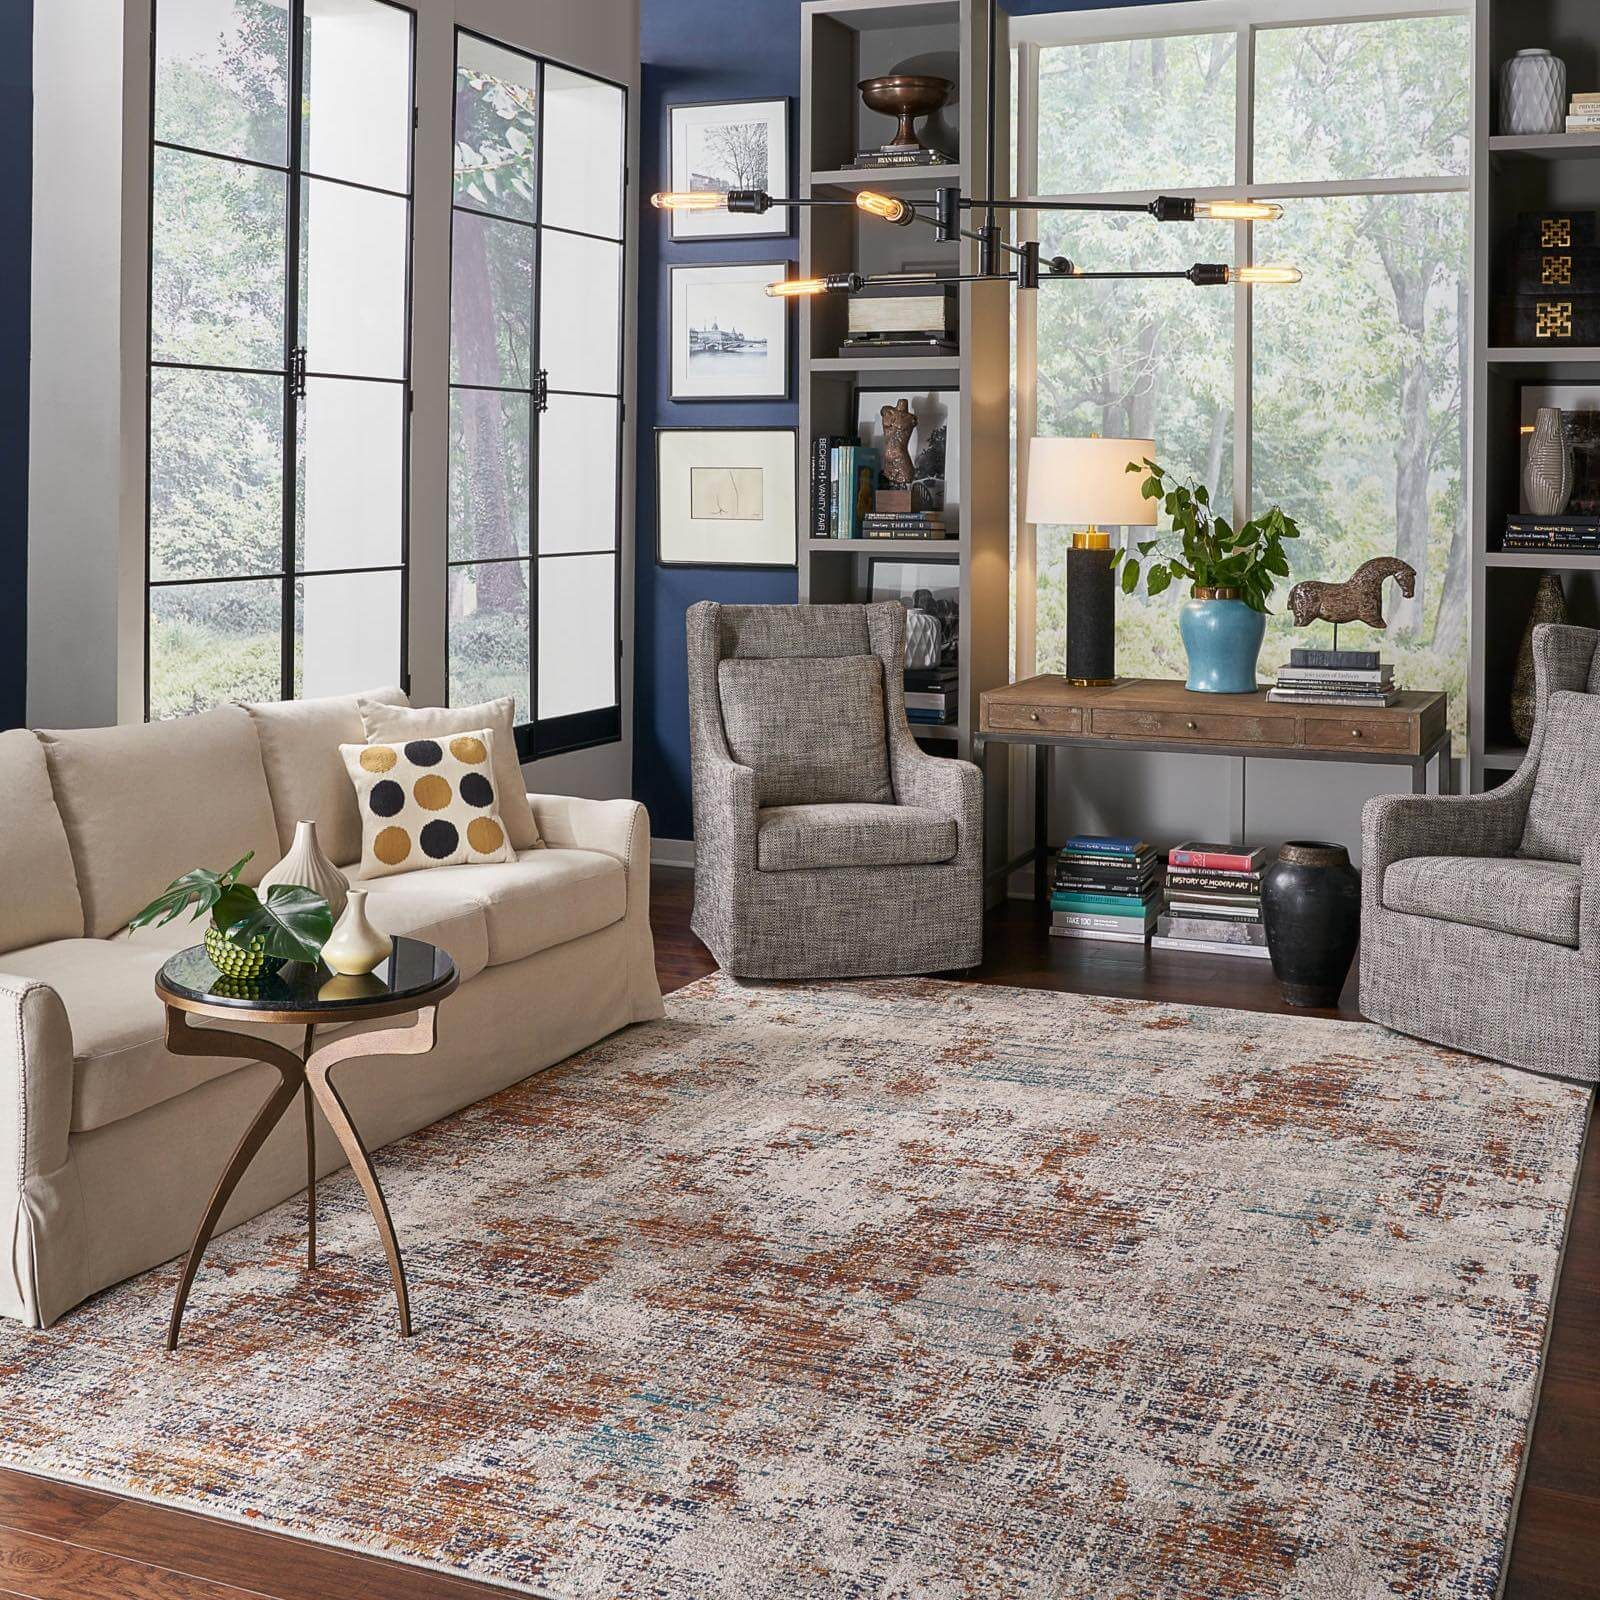 Choosing the Right Size Area Rug